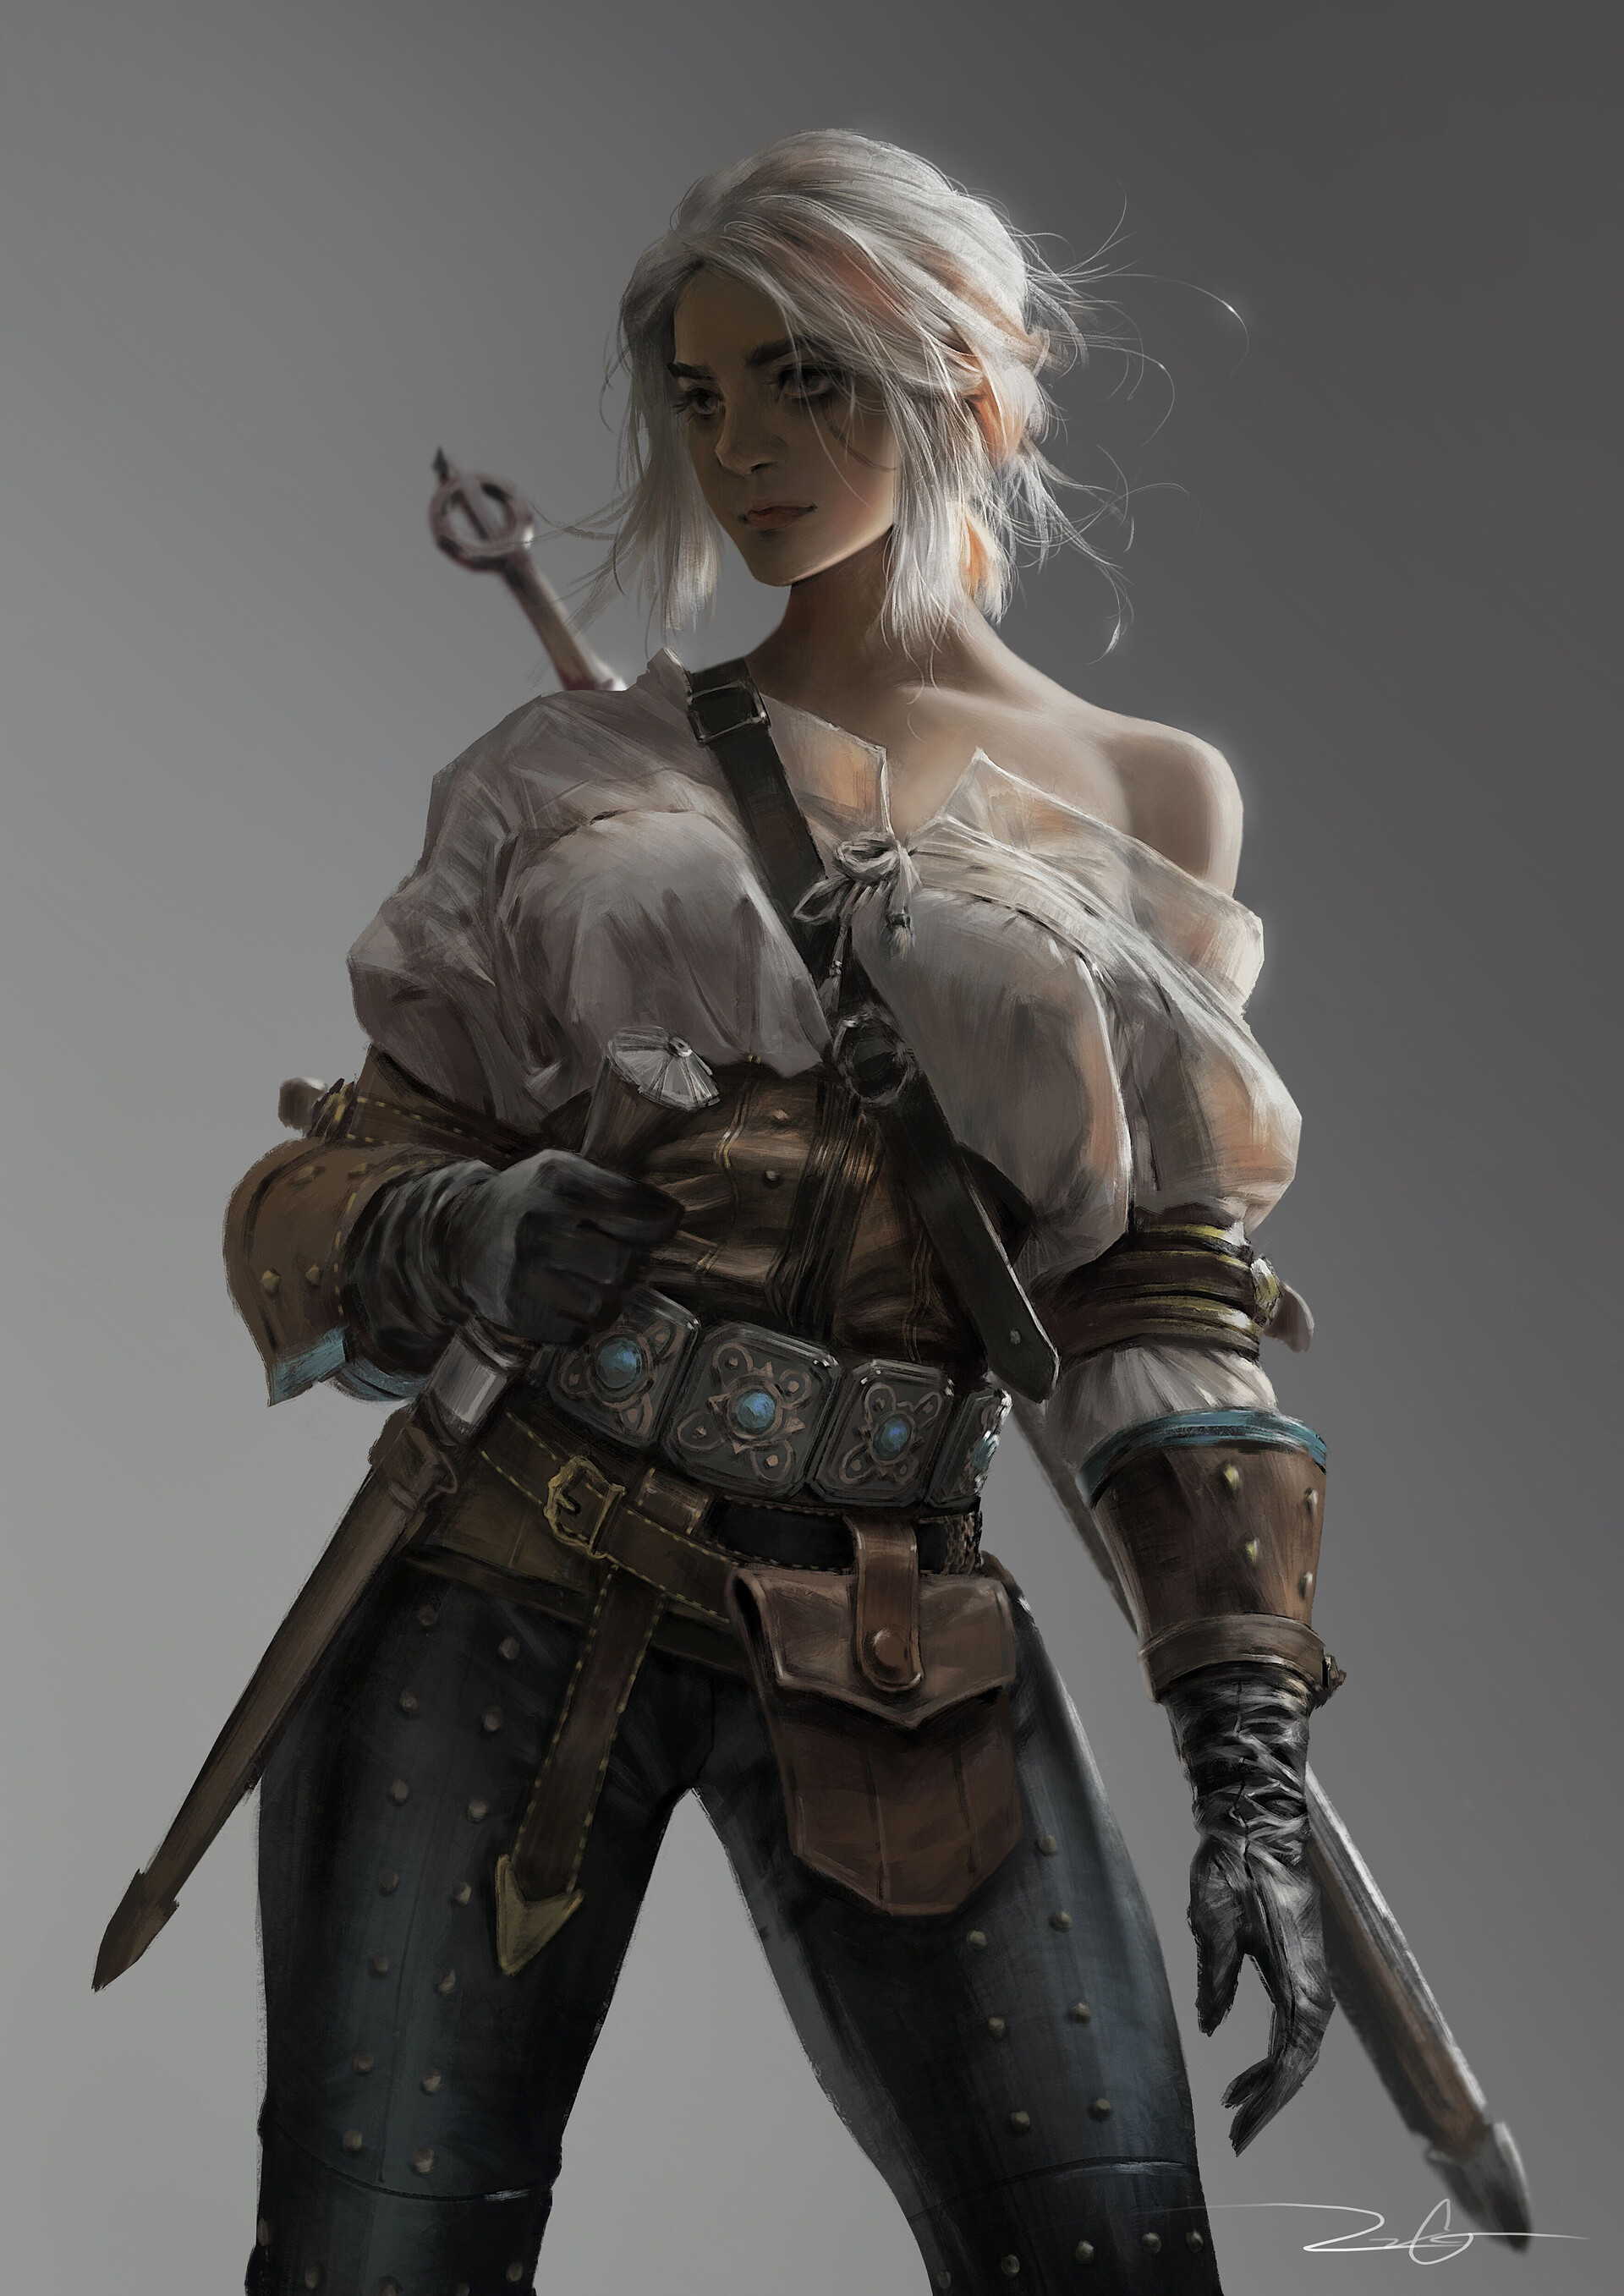 General 1920x2715 Vinci R video game girls video game characters white hair blonde women The Witcher 3 The Witcher 3: Wild Hunt Ciri (The Witcher) Cirilla portrait display Cirilla Fiona Elen Riannon fan art digital art drawing video games simple background ArtStation